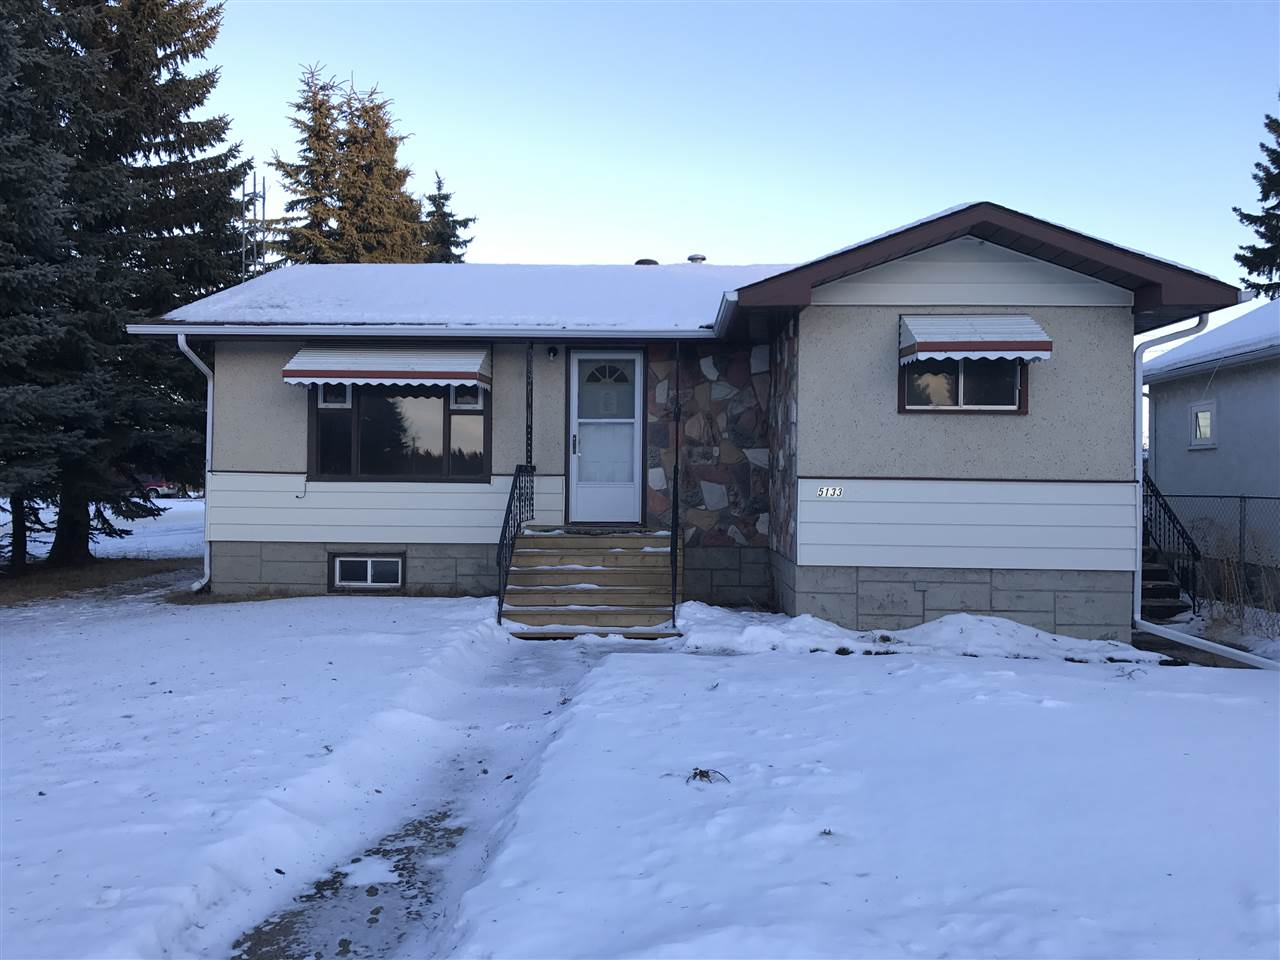 Main Photo: 5133 53 Street: Andrew House for sale : MLS® # E4089388